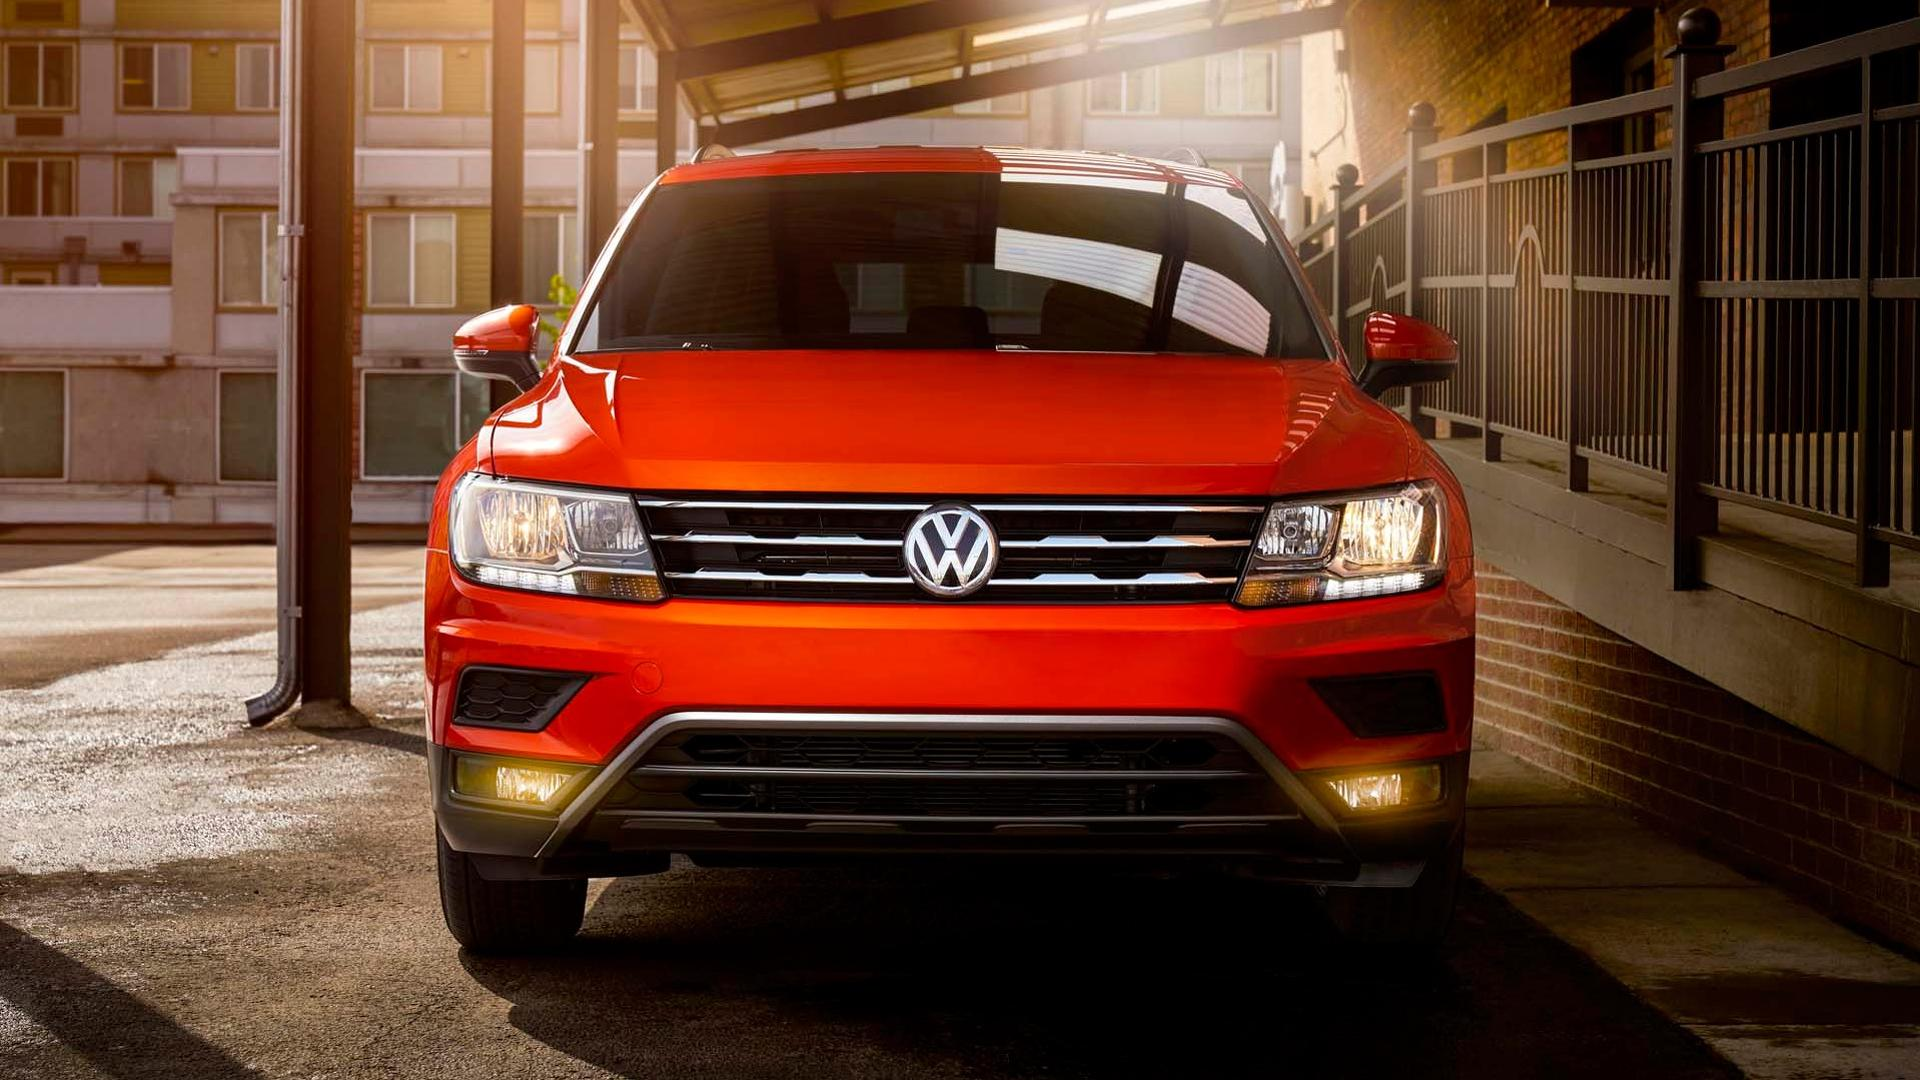 700,000 VW Tiguans And Tourans Recalled Over Roof Lighting